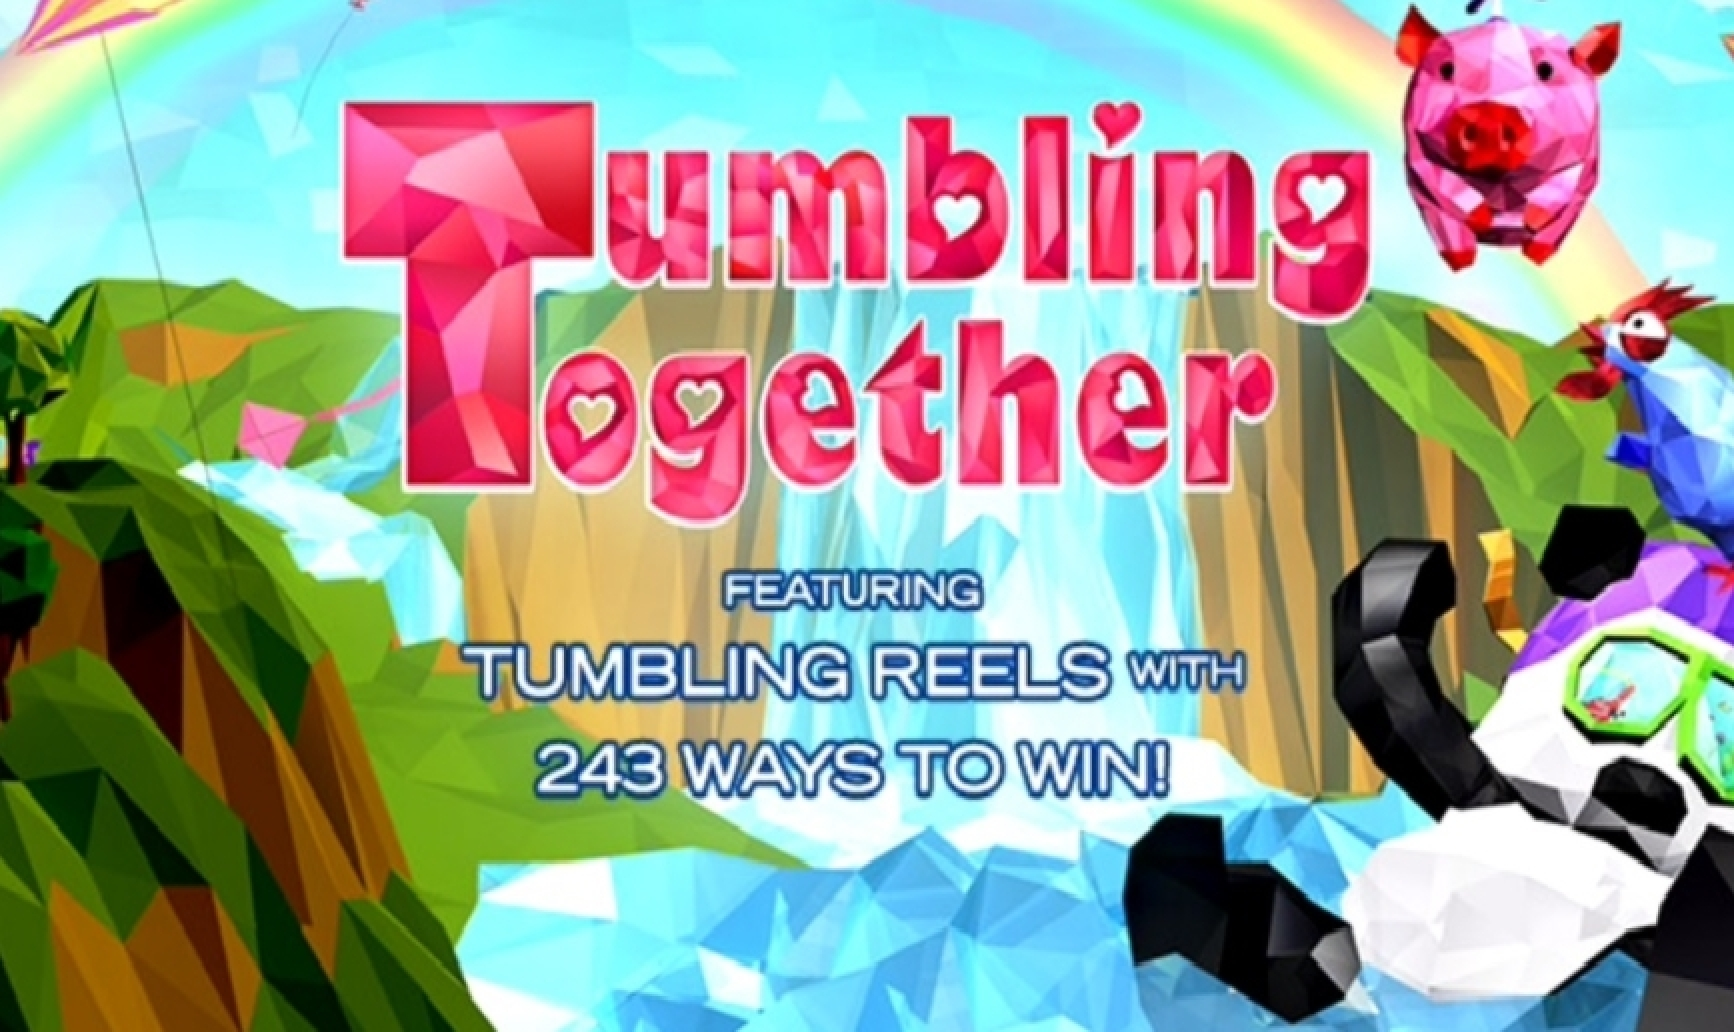 The Tumbling Together Online Slot Demo Game by High 5 Games